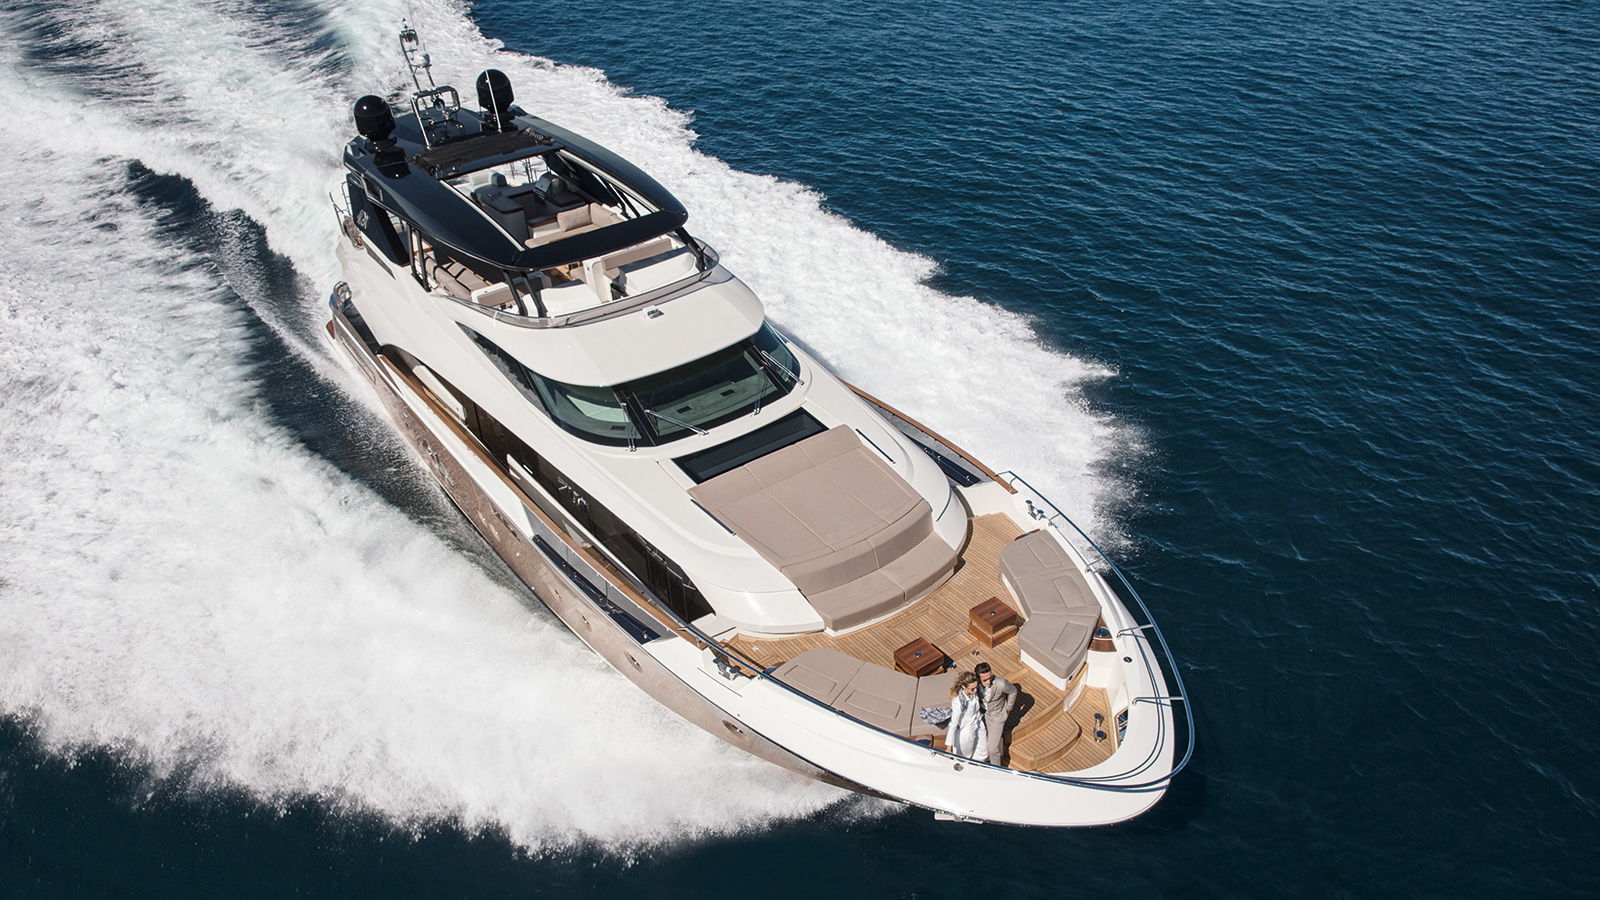 aerial-view-of-the-mcy-96-yacht